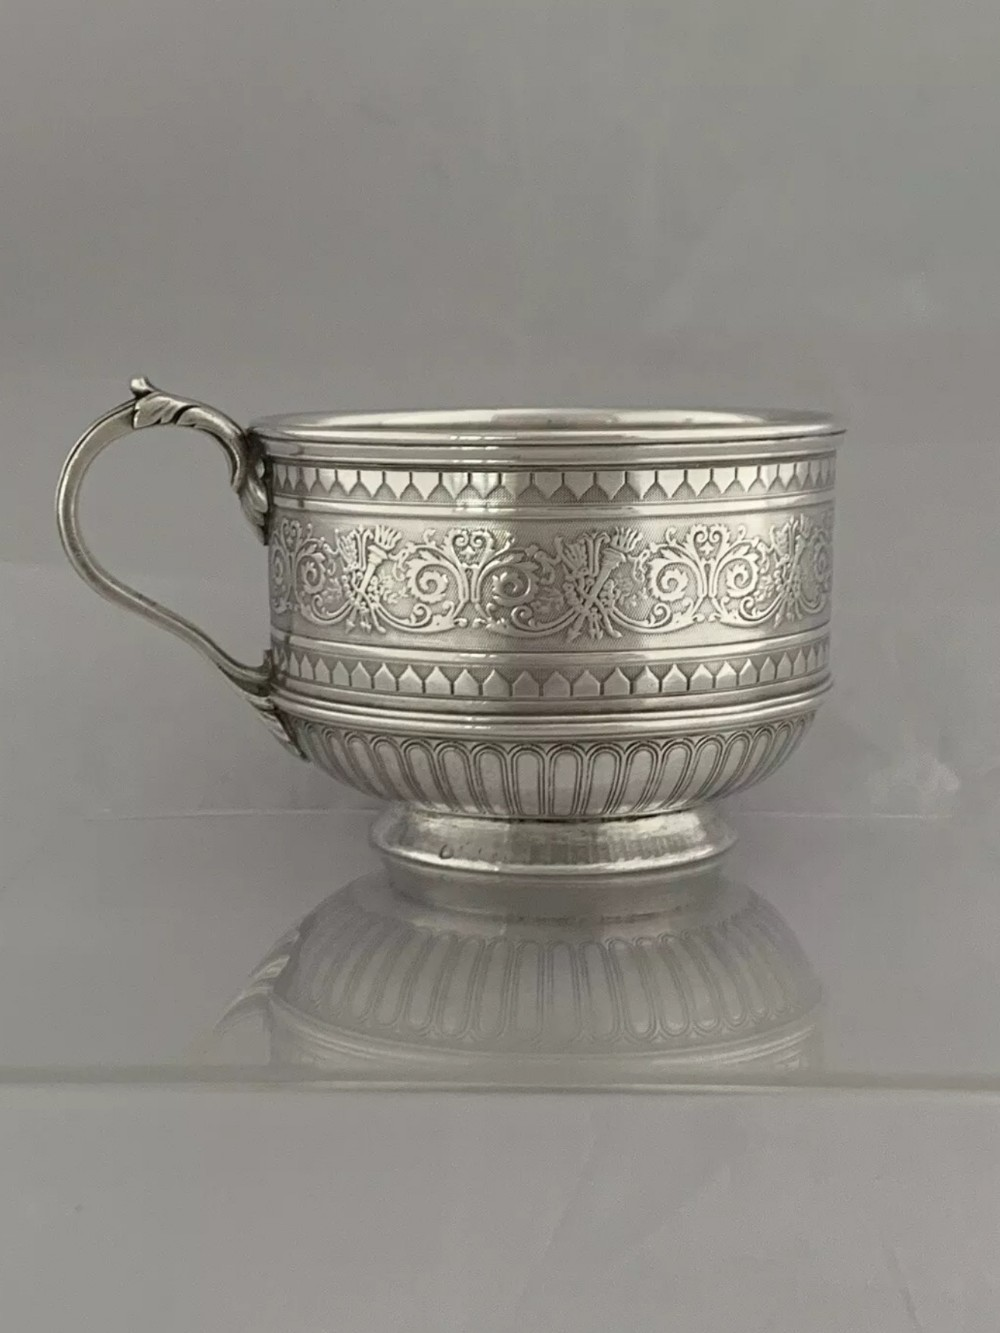 antique silver french victorian era coffee cup circa 1880 paris sterling large